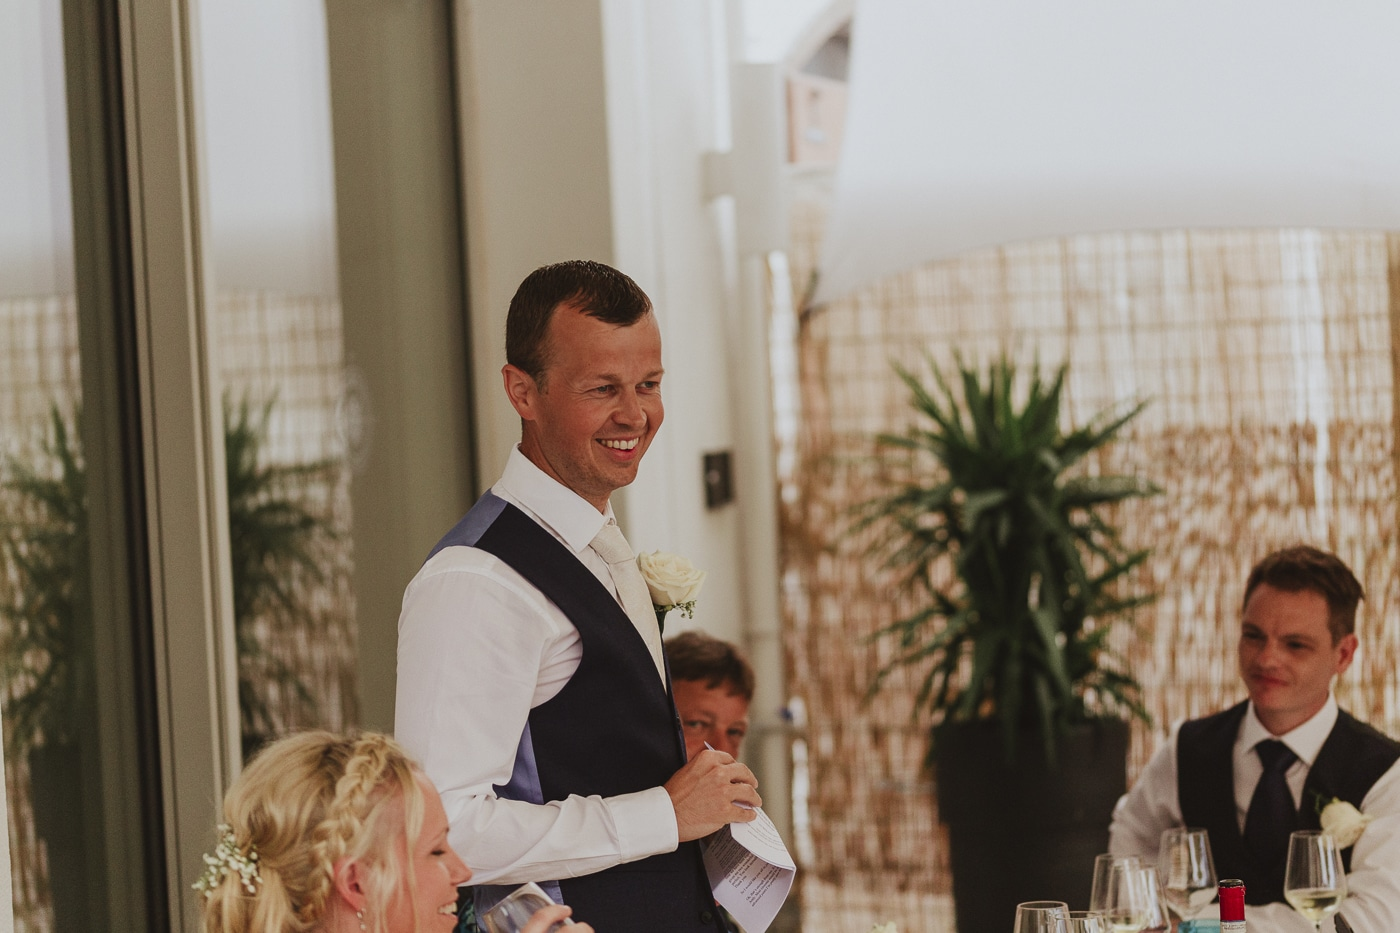 Groom in waistcoat standing up during dinner and drinks doing speech by Joshua Wyborn